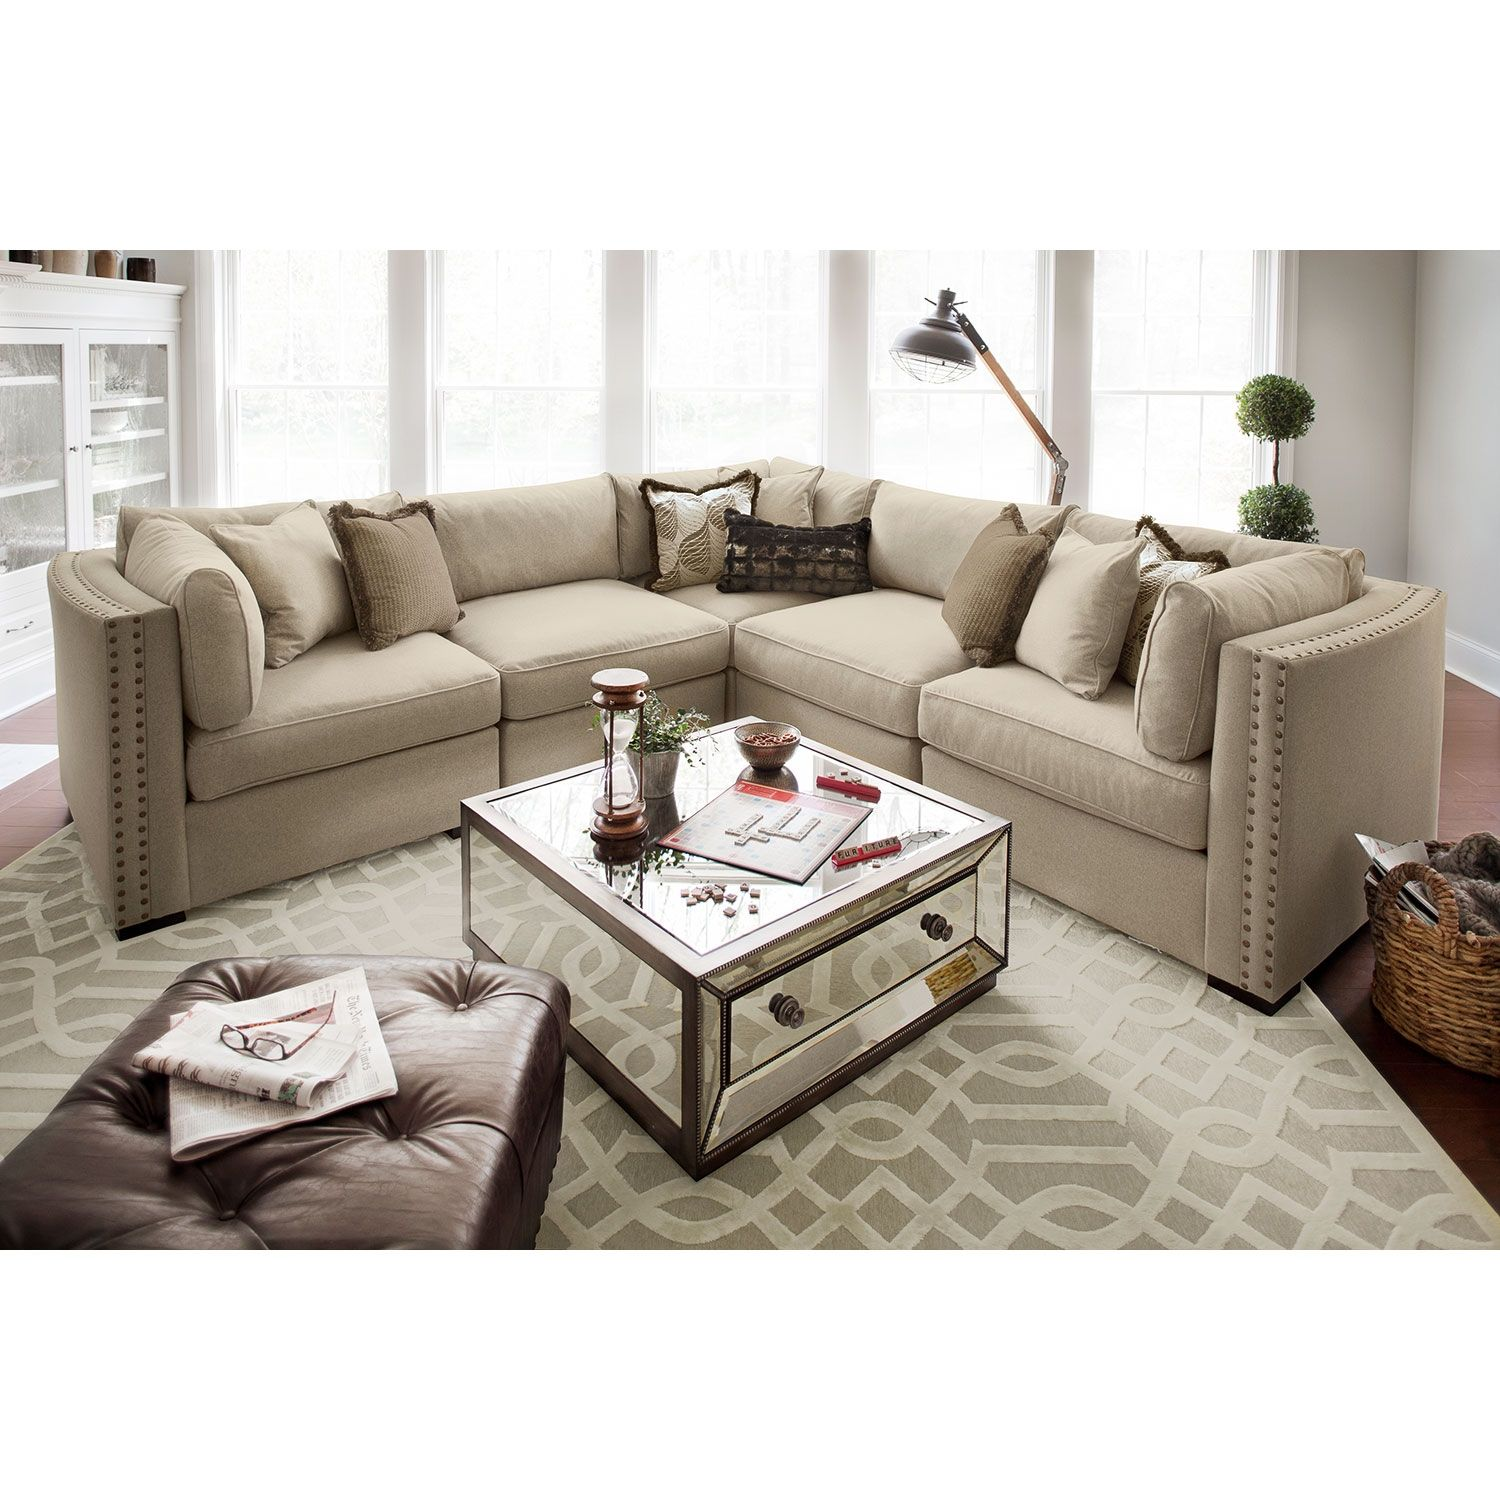 With Its Sandy Taupe Hue And Its Low Profile, The Athens Sectional